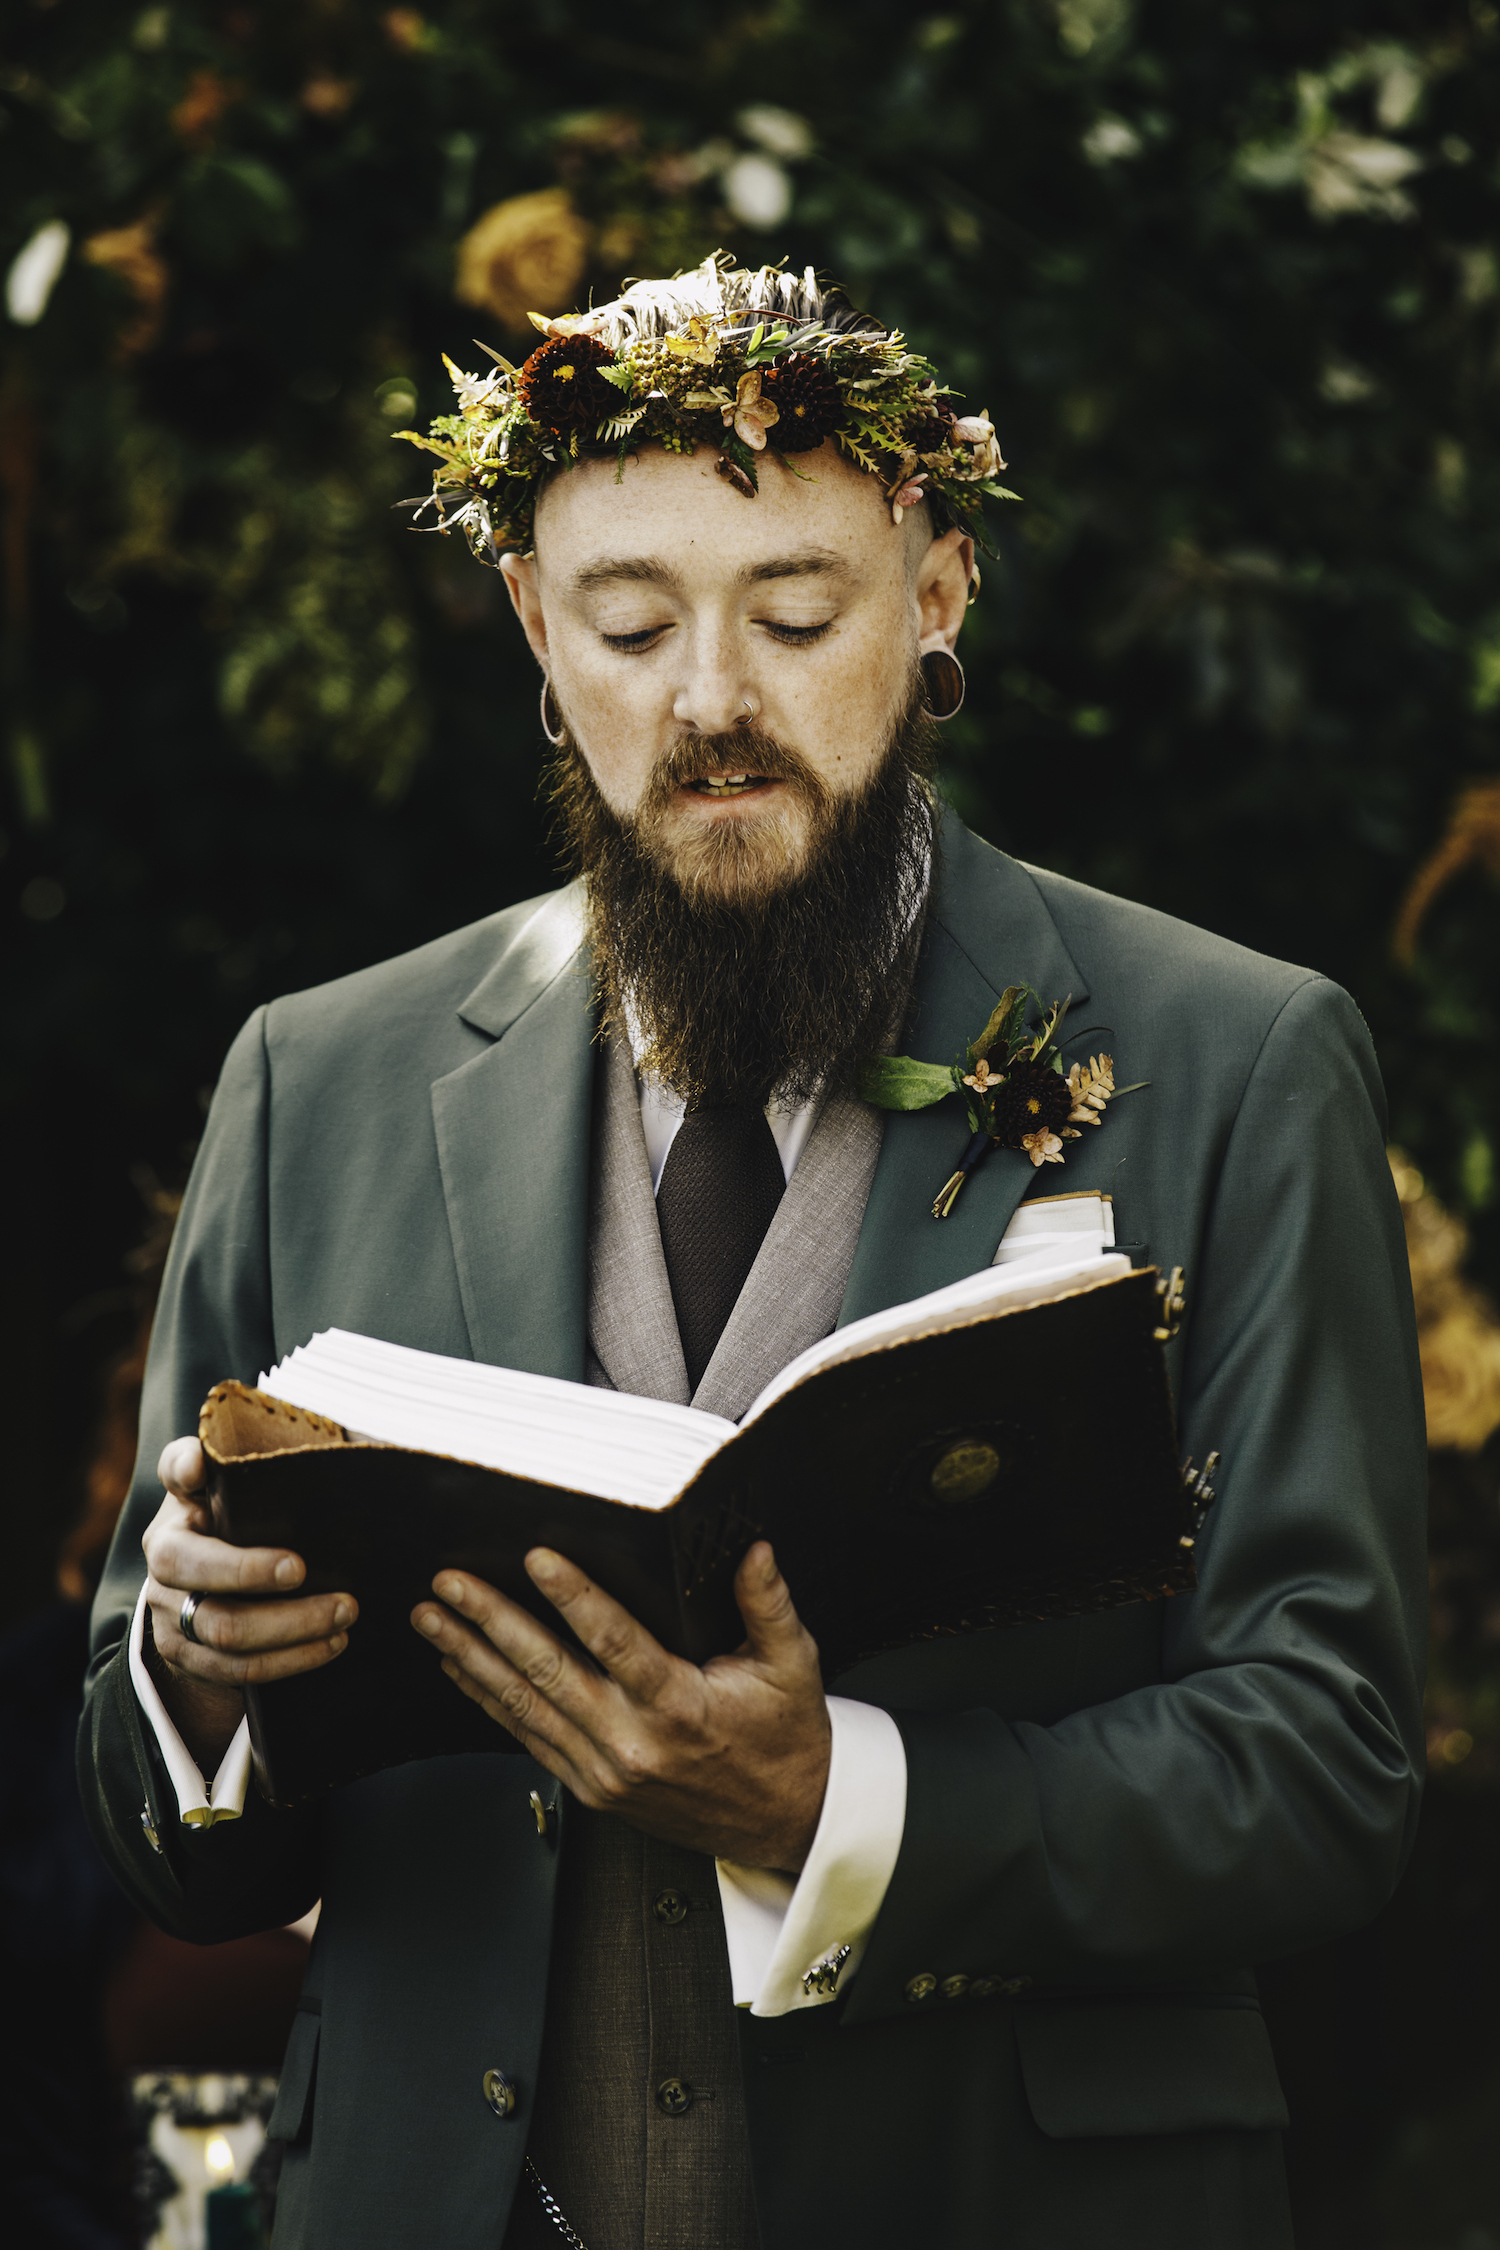 Groom reading from book